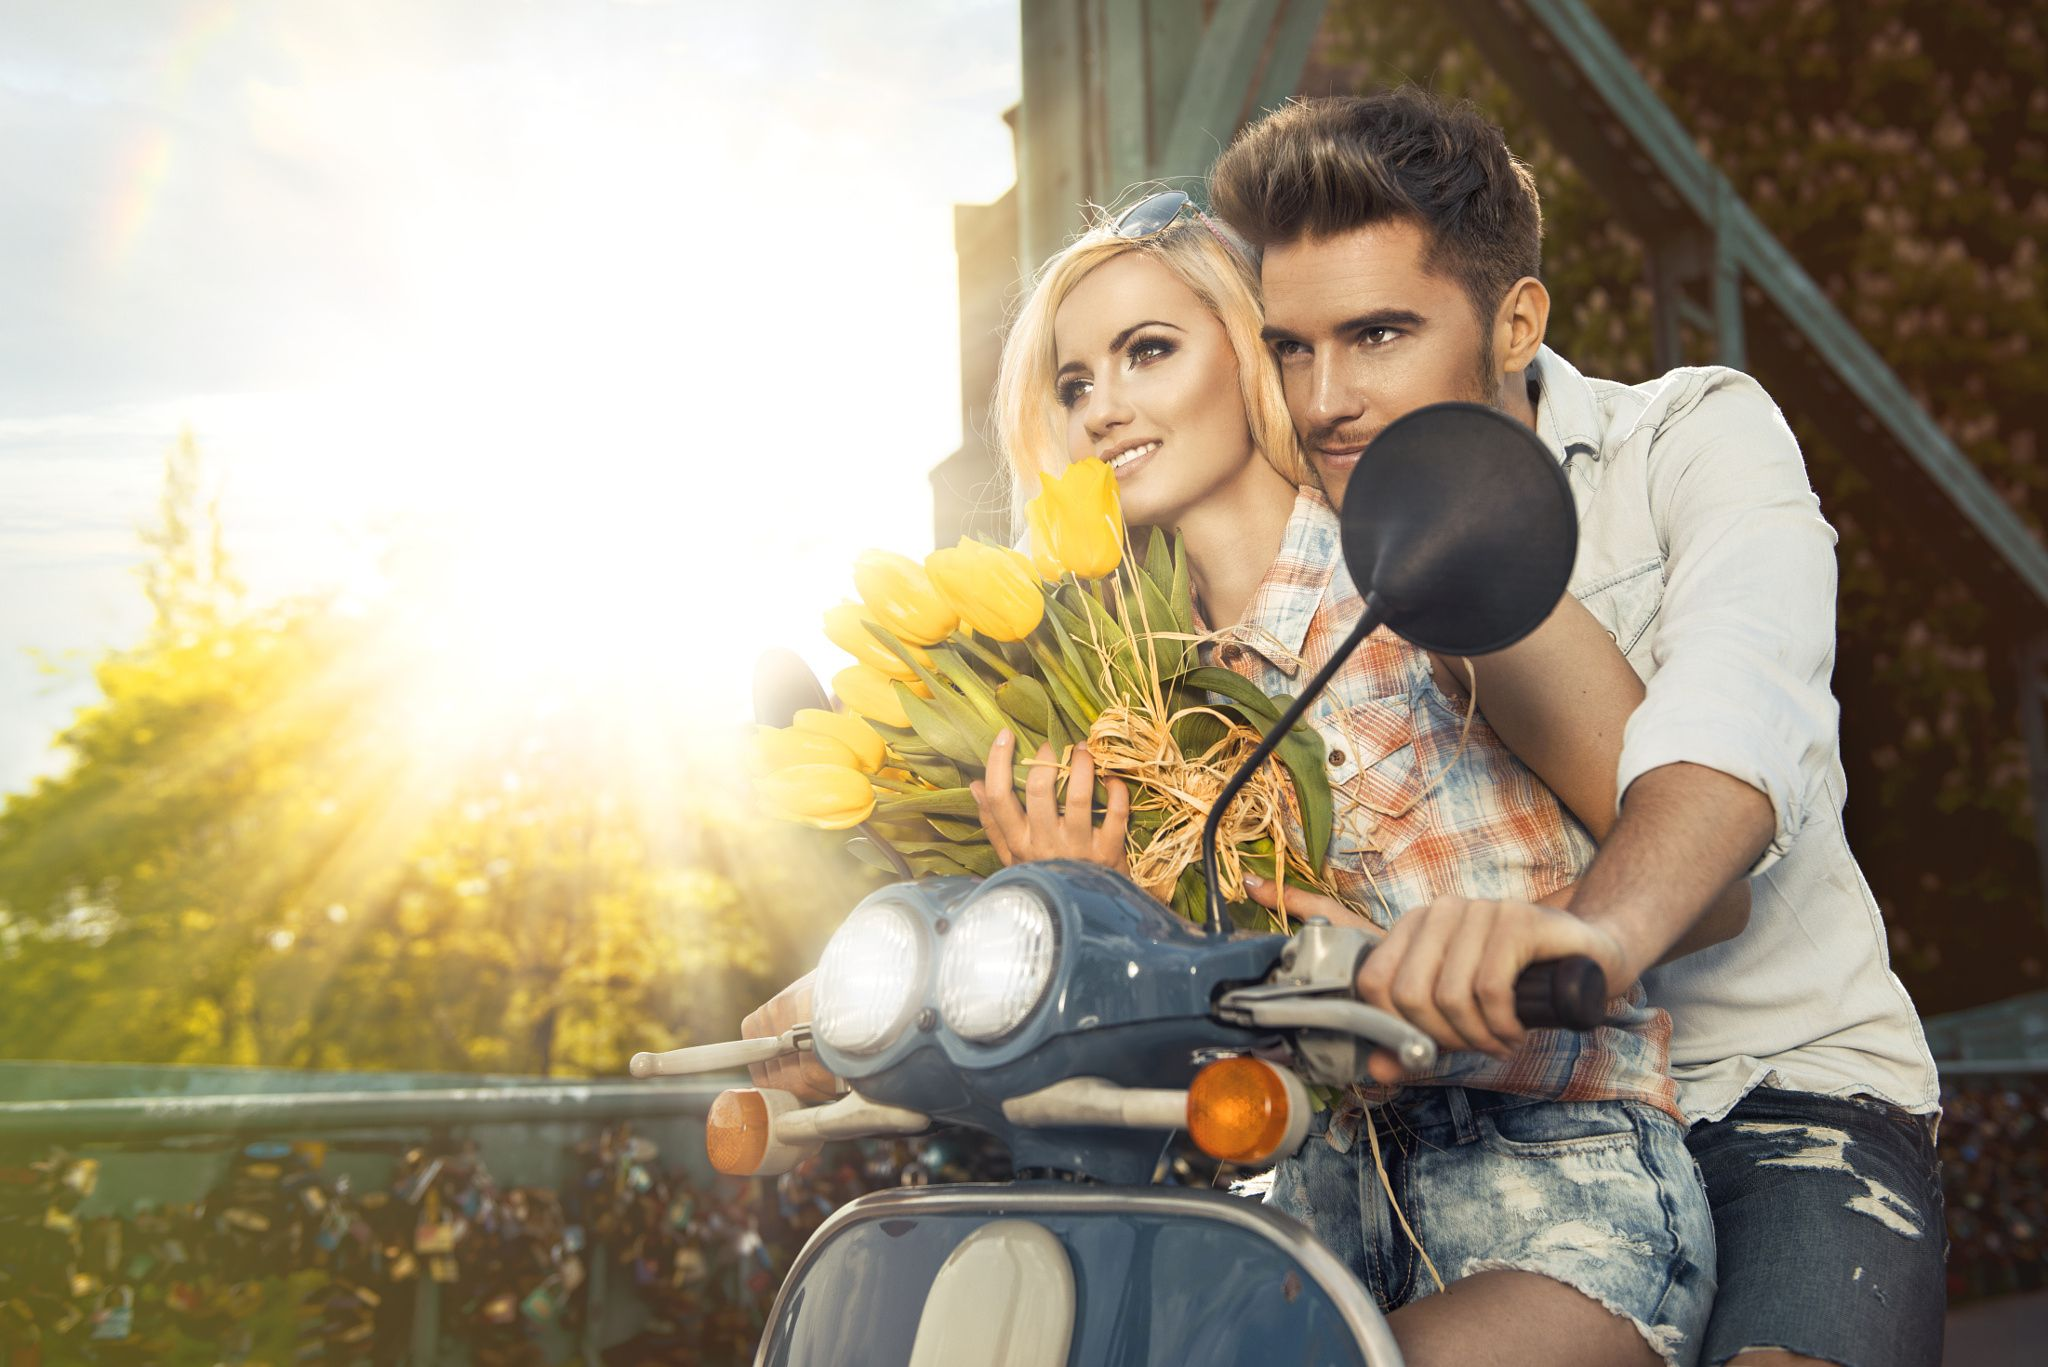 Happy free freedom couple driving scooter on summer date by artur k on 500px